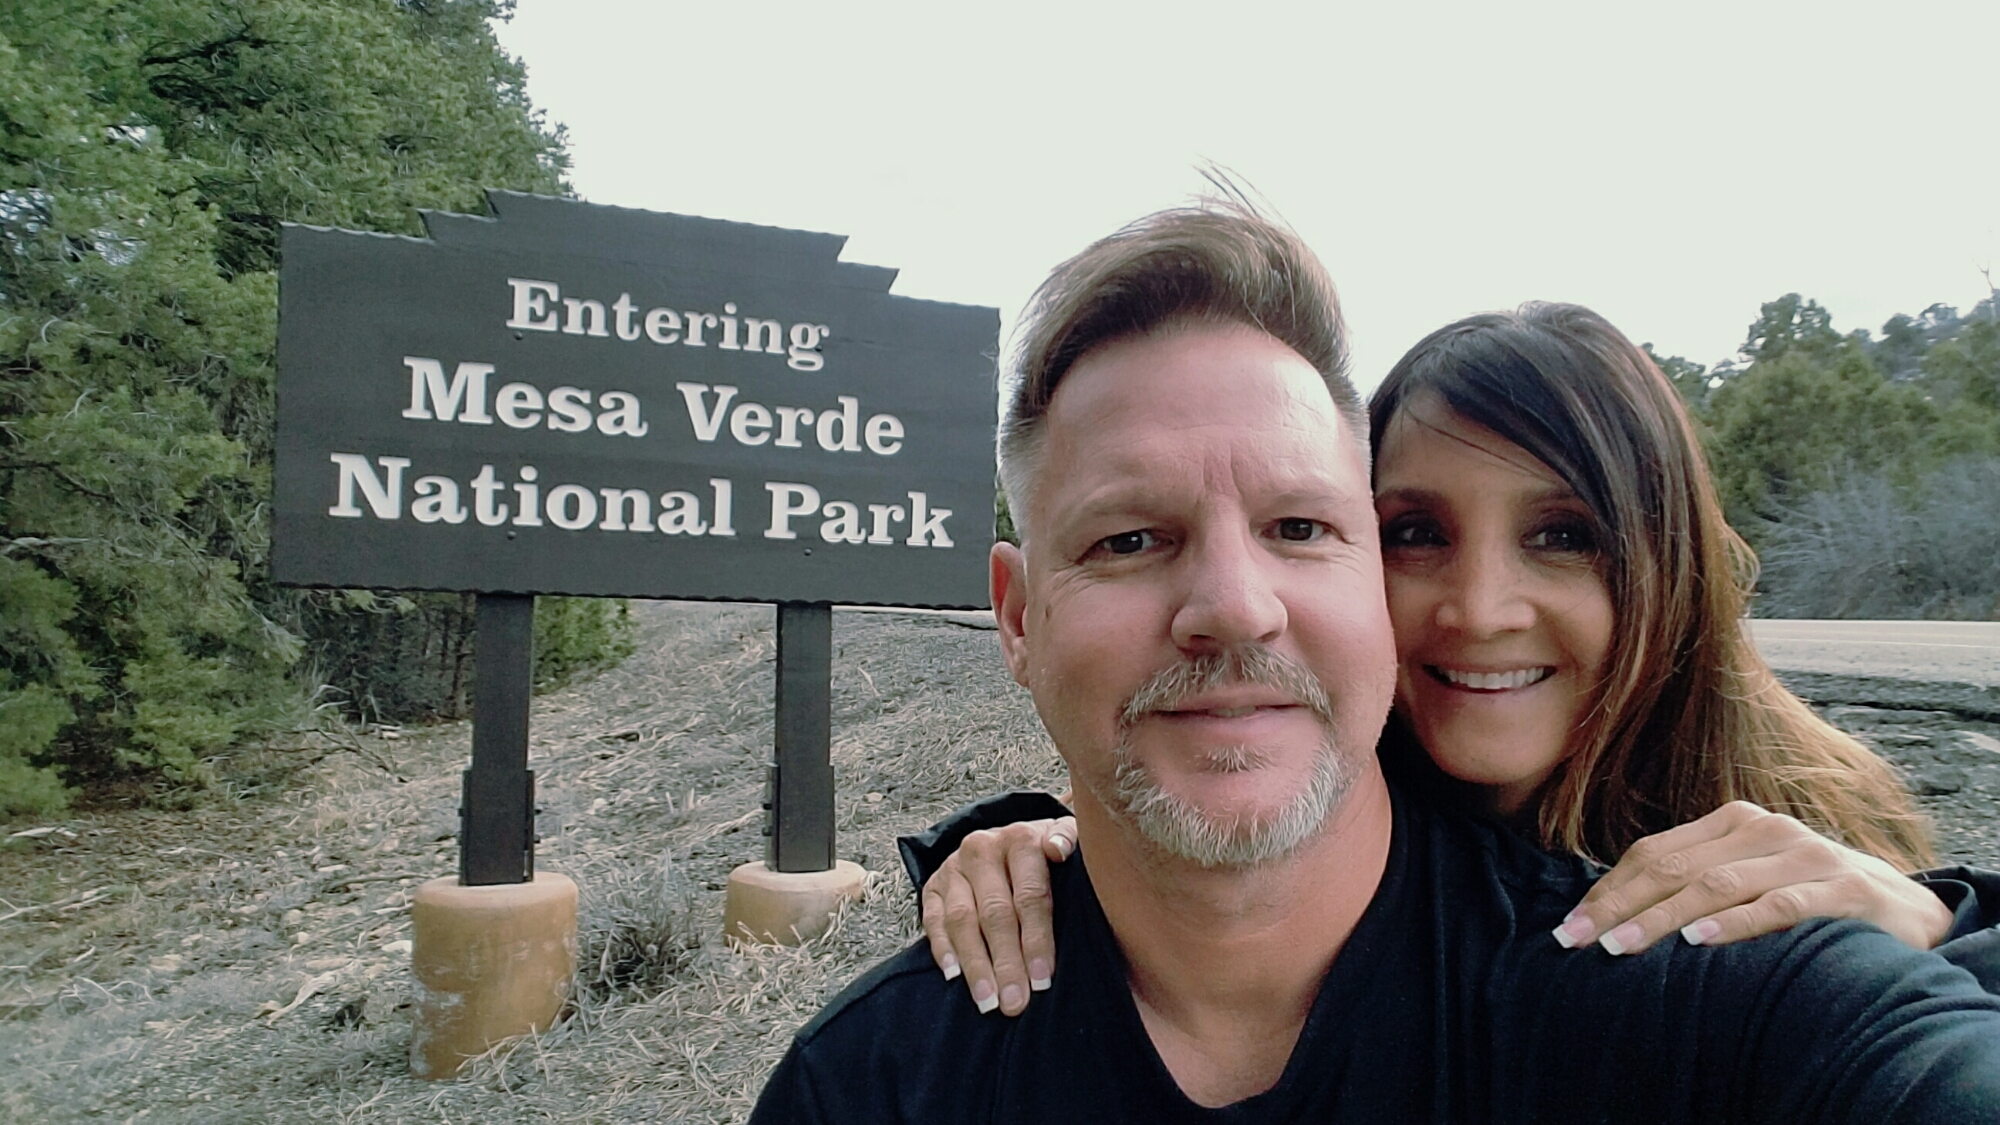 mesa verde national park jewish dating site Chaco to mesa verde may 21–26, 2018 cliff dwellings at mesa verde national park day 1 monday we tour mesa-top ruins dating to the earliest pueblo occupation.